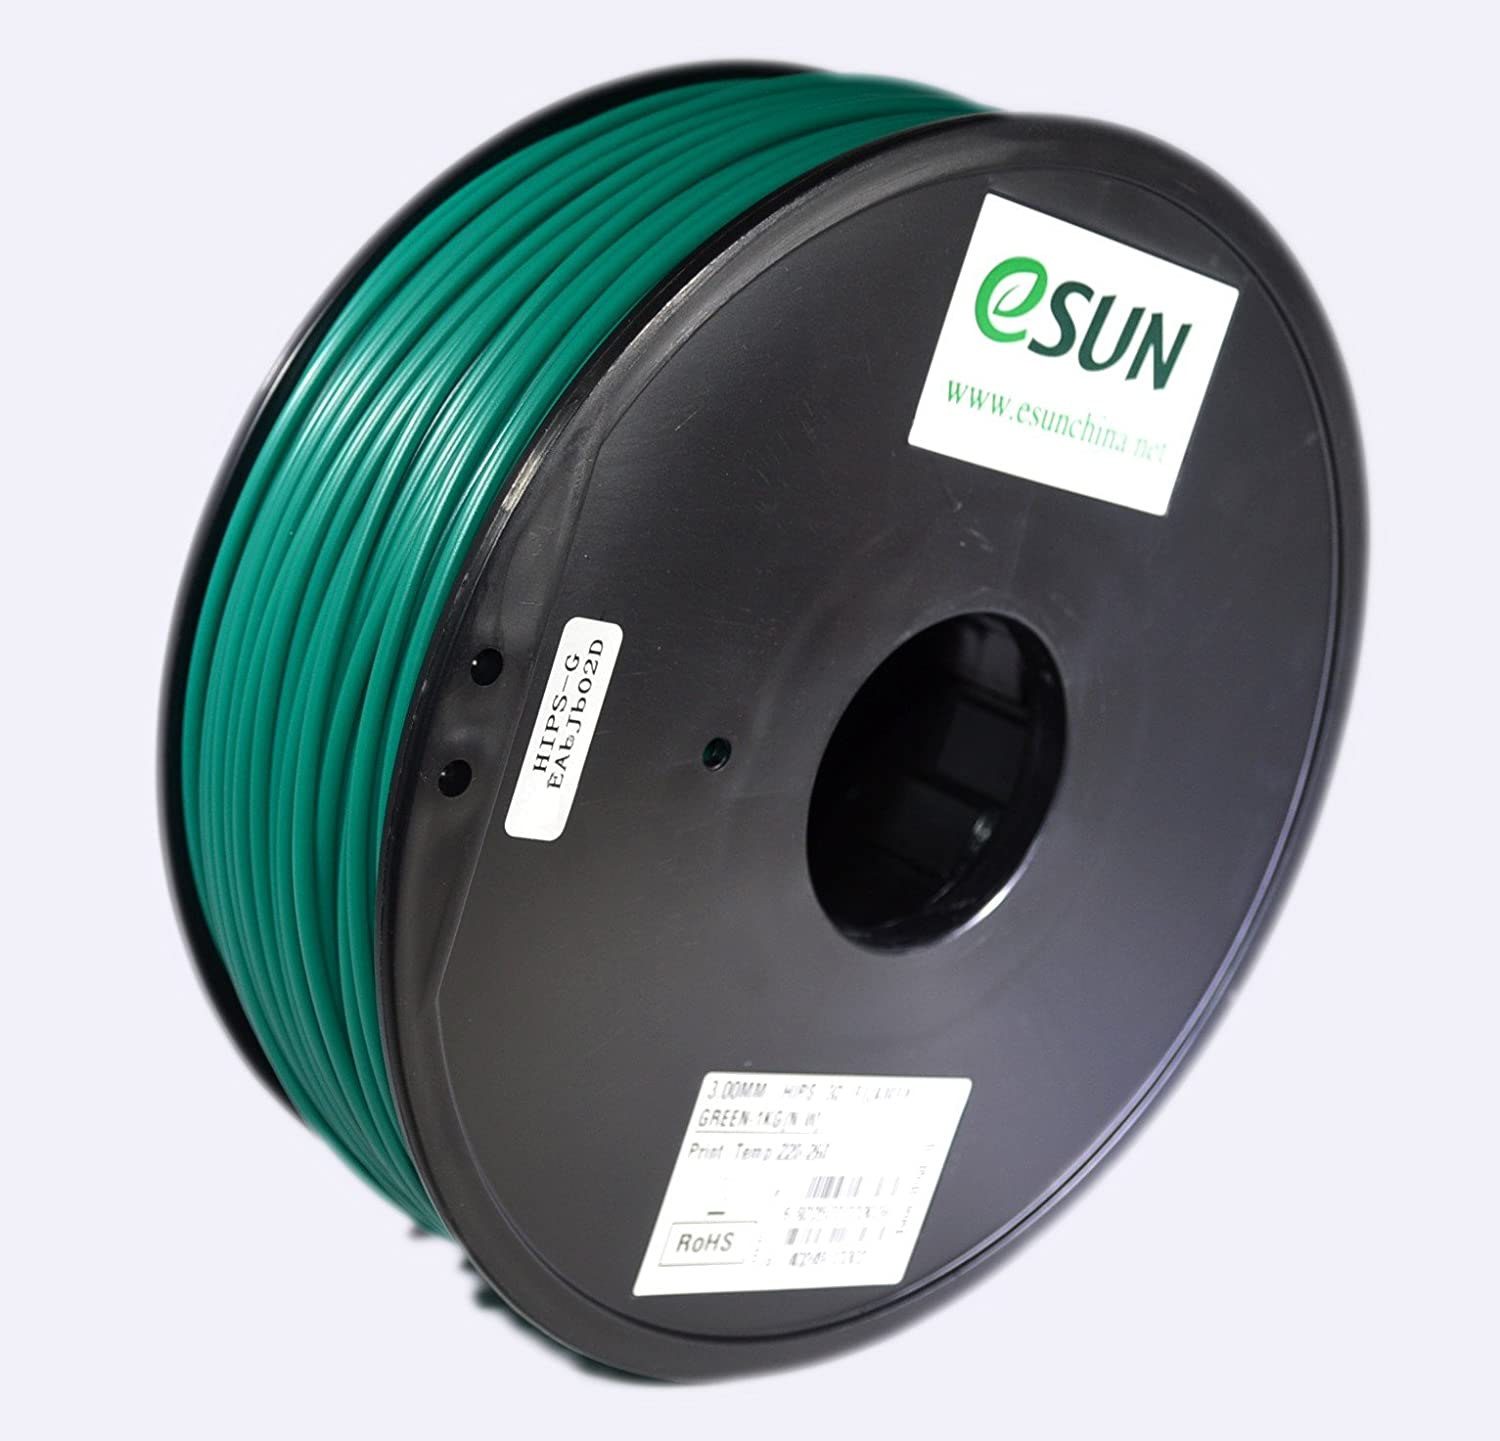 eSUN 3mm Black HIPS 3D Printer Filament 1KG Spool Black IG-C-HIPS300B1 2.2lbs